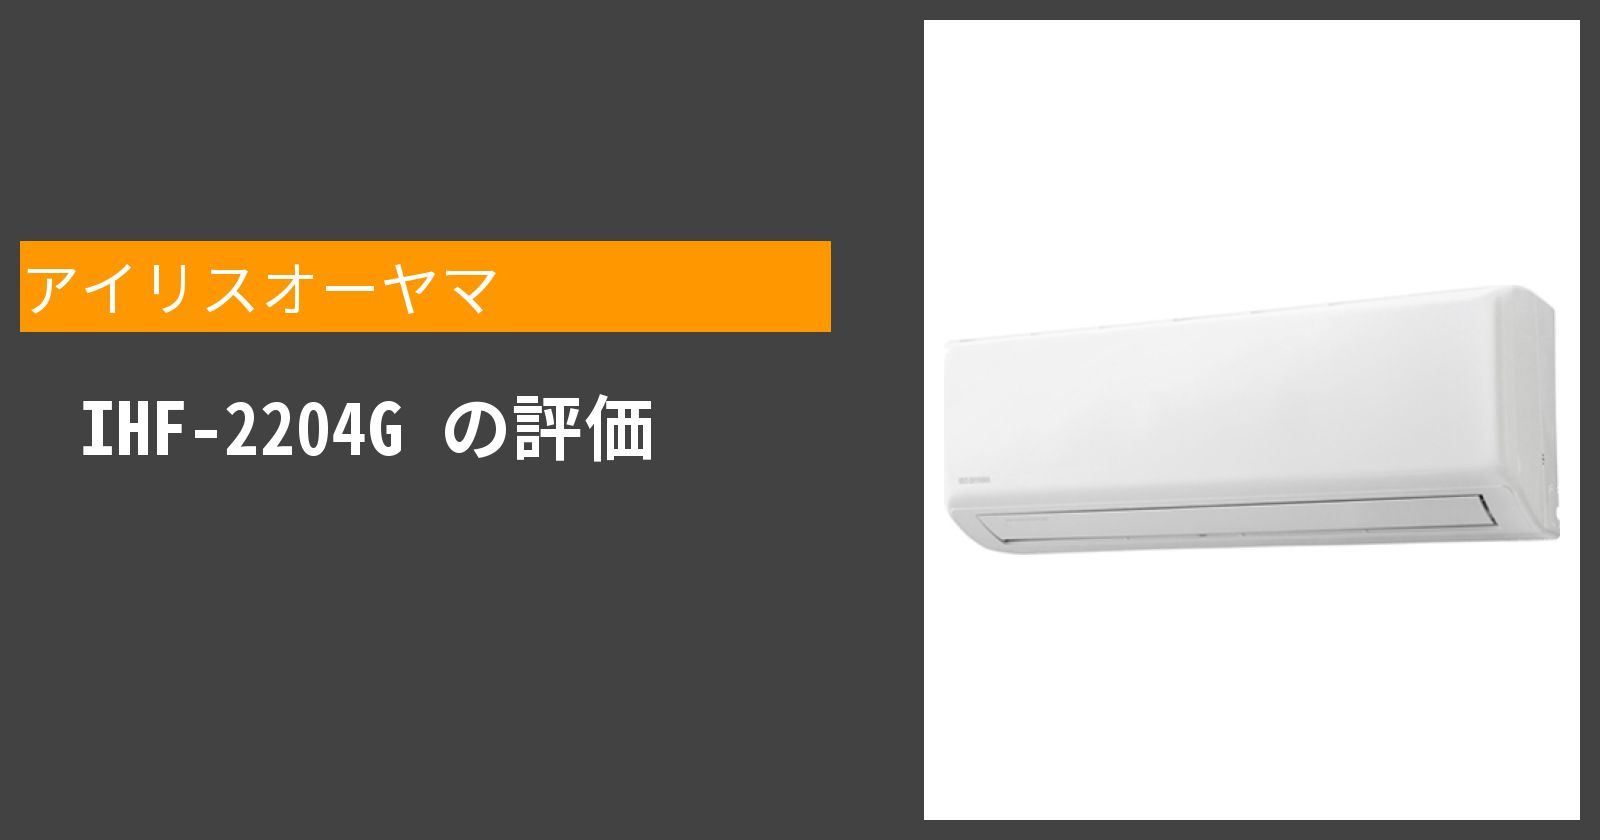 IHF-2204Gを徹底評価